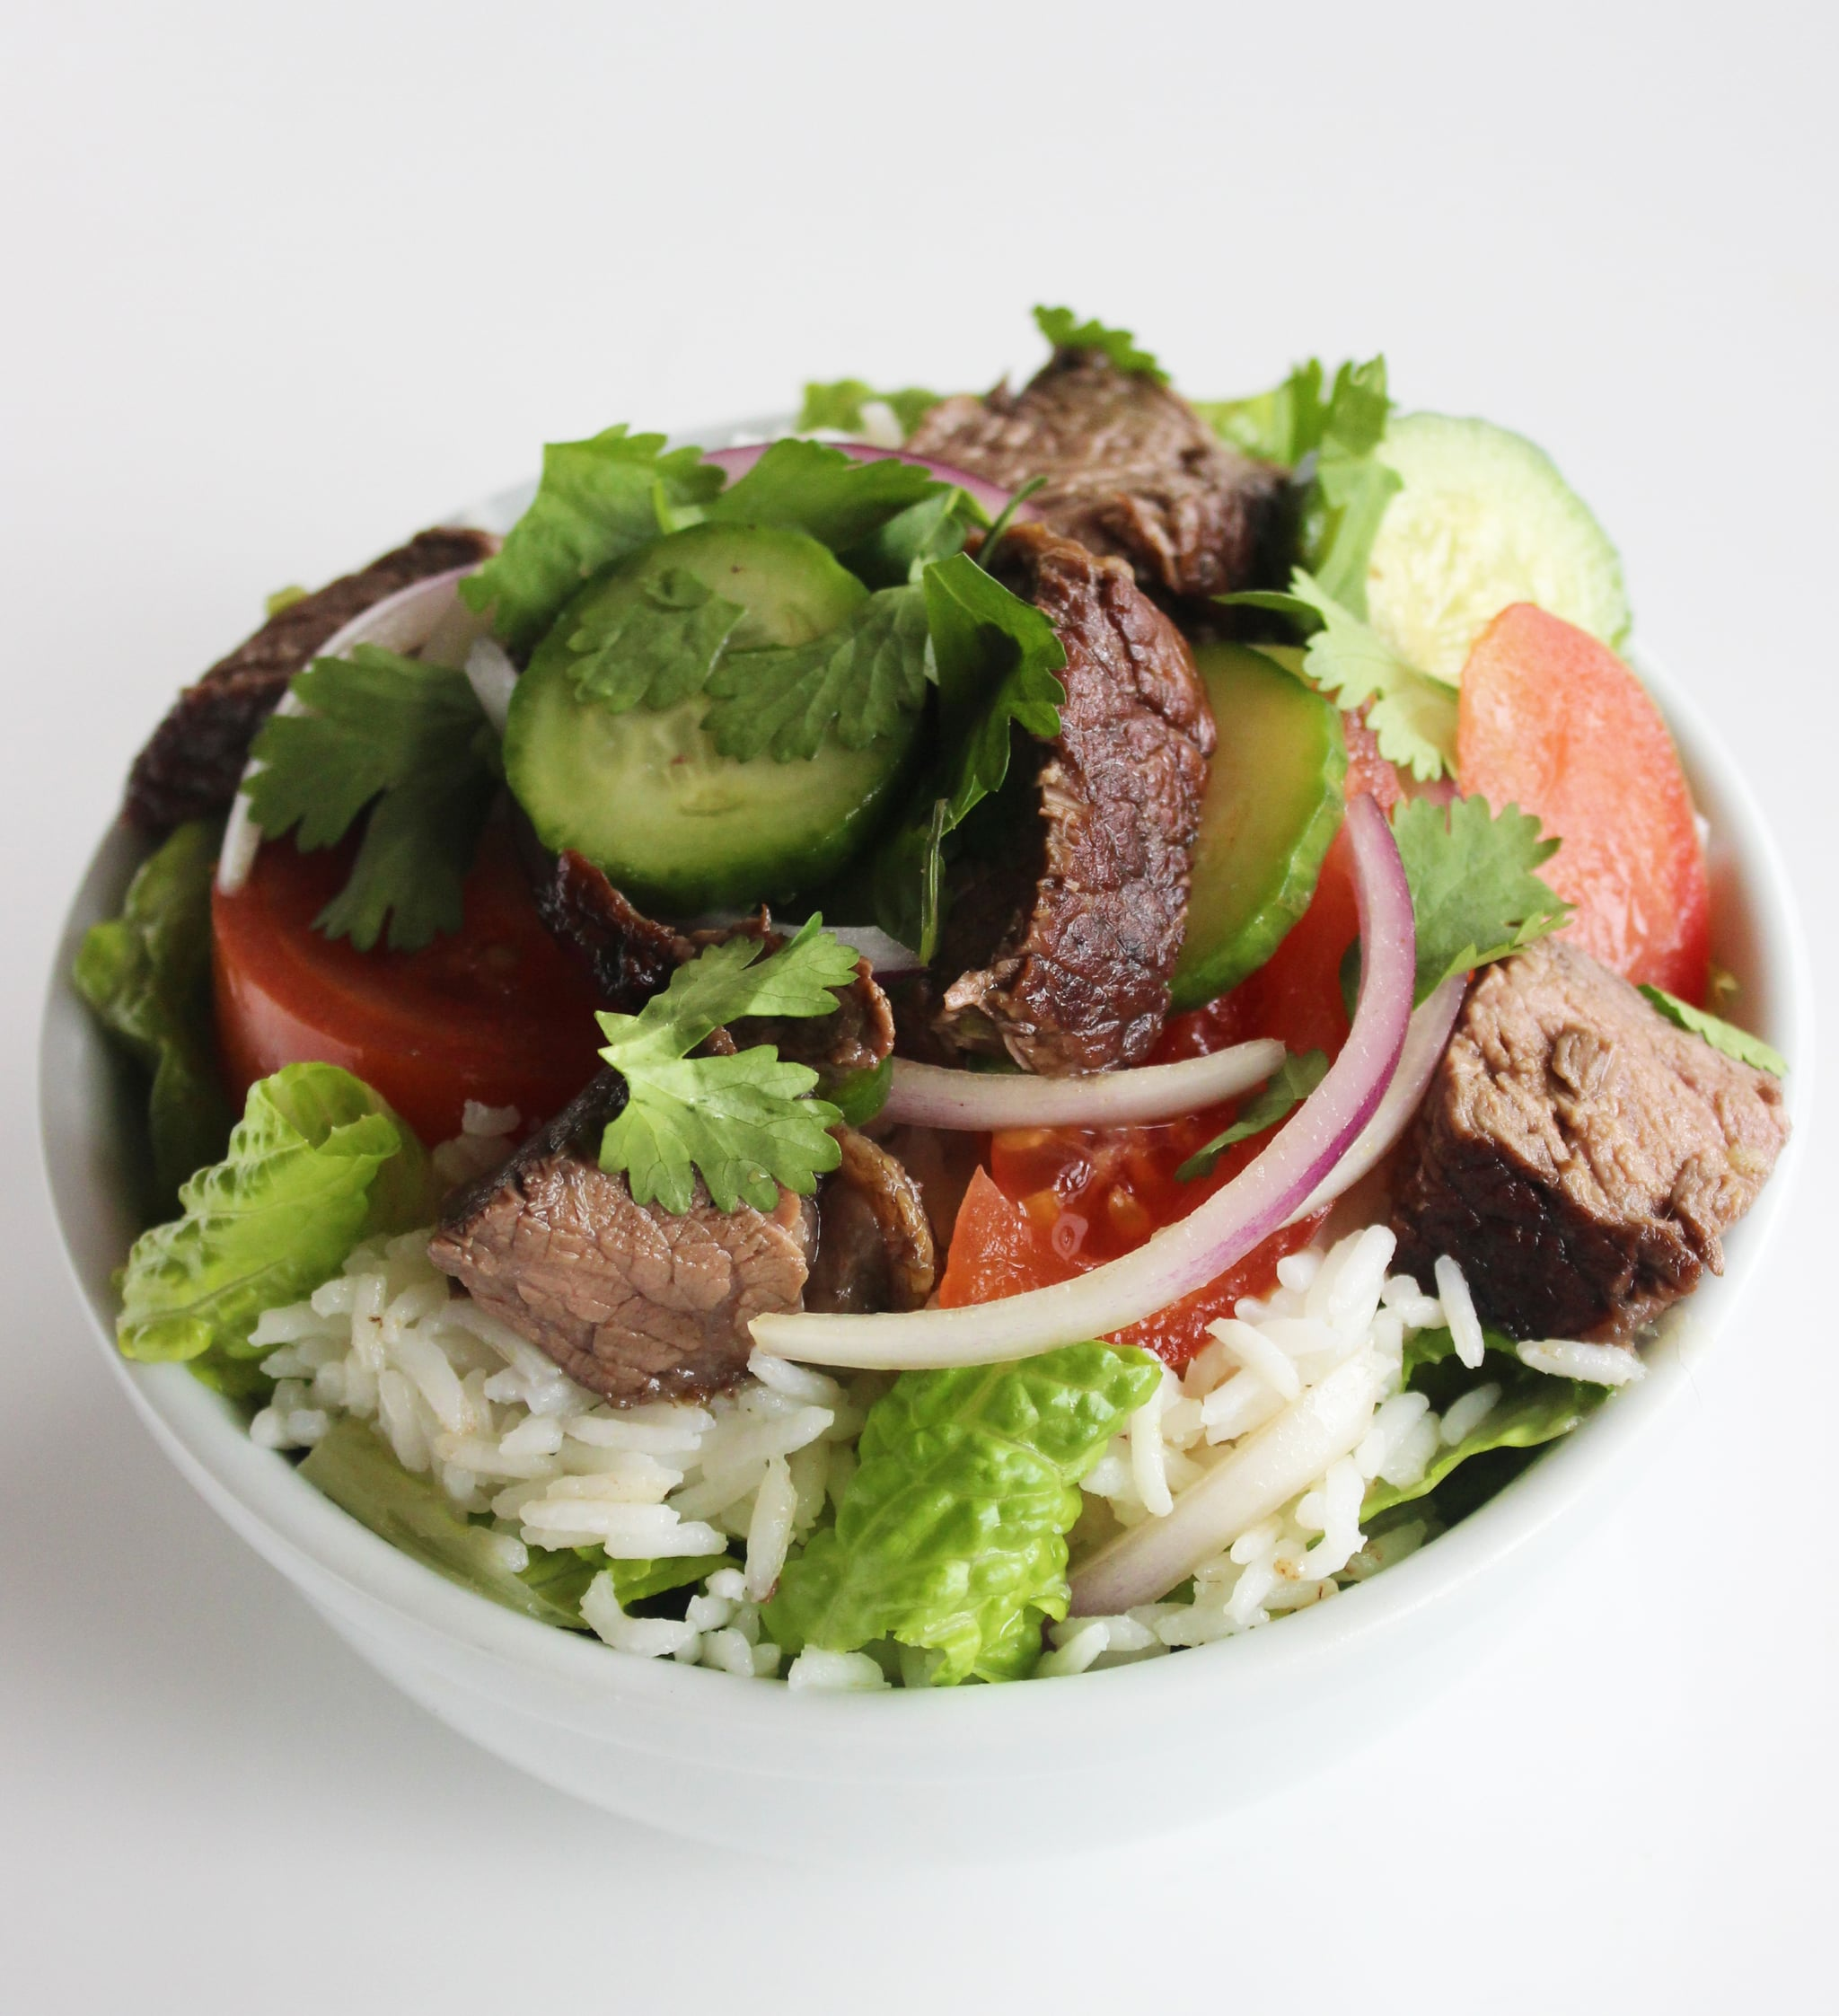 Healthy thai beef salad popsugar fitness share this link forumfinder Choice Image